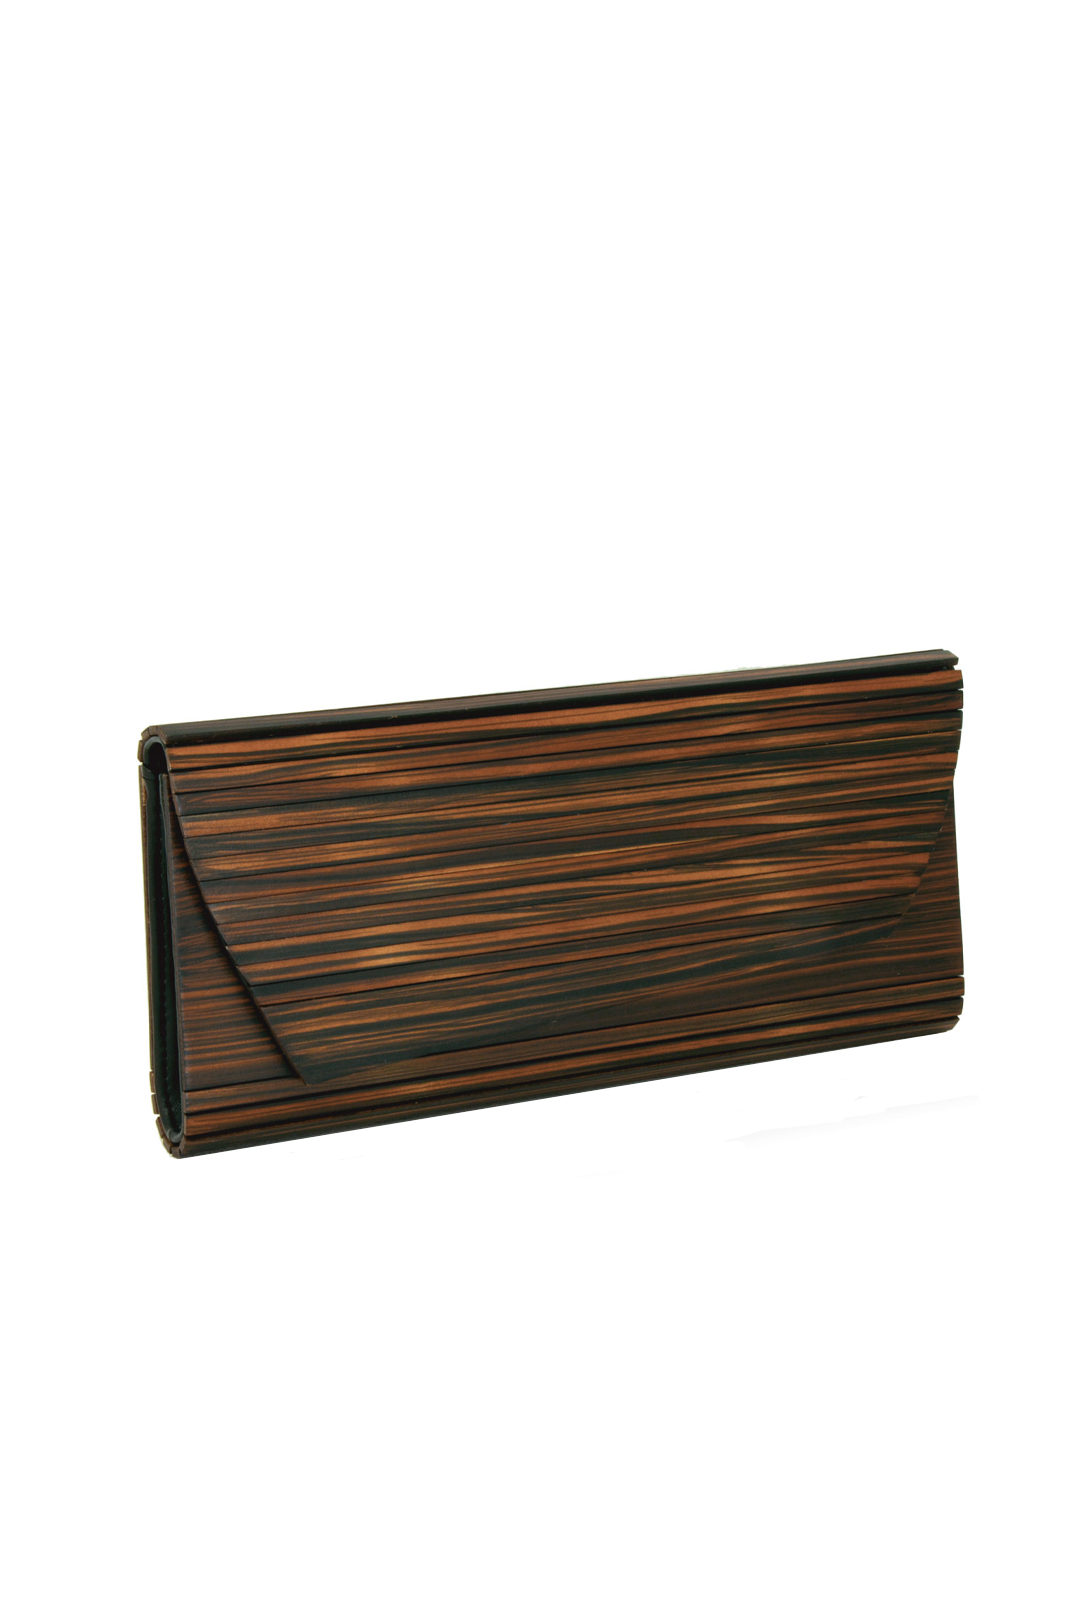 Brown Wooden Clutch